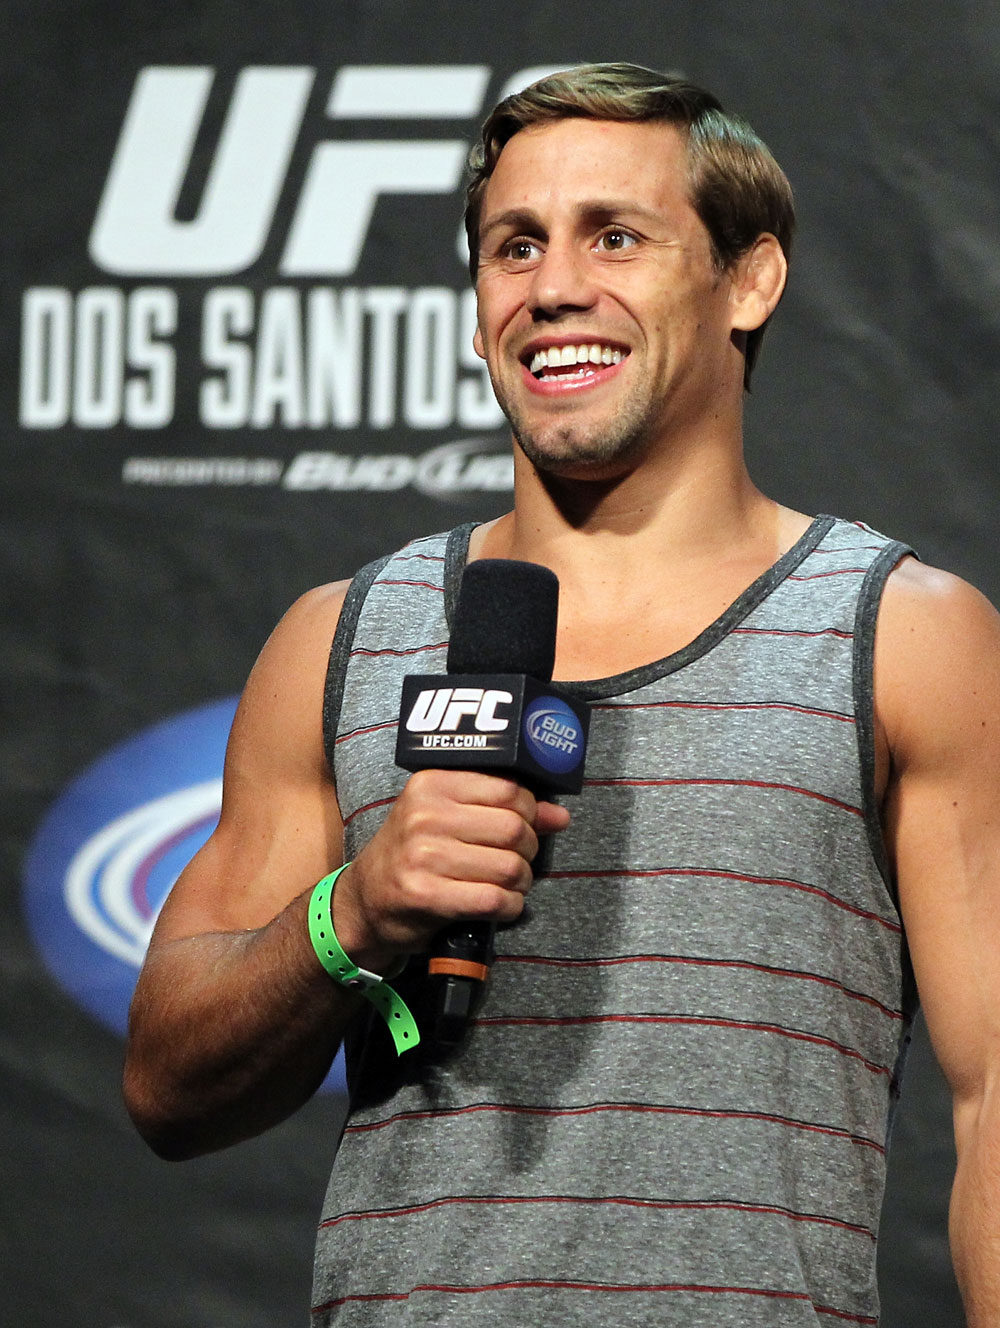 LAS VEGAS, NV - MAY 25:   Urijah Faber interacts with fans during a Q&A session before the UFC 146 official weigh in at the MGM Grand Garden Arena on May 25, 2012 in Las Vegas, Nevada.  (Photo by Josh Hedges/Zuffa LLC/Zuffa LLC via Getty Images)